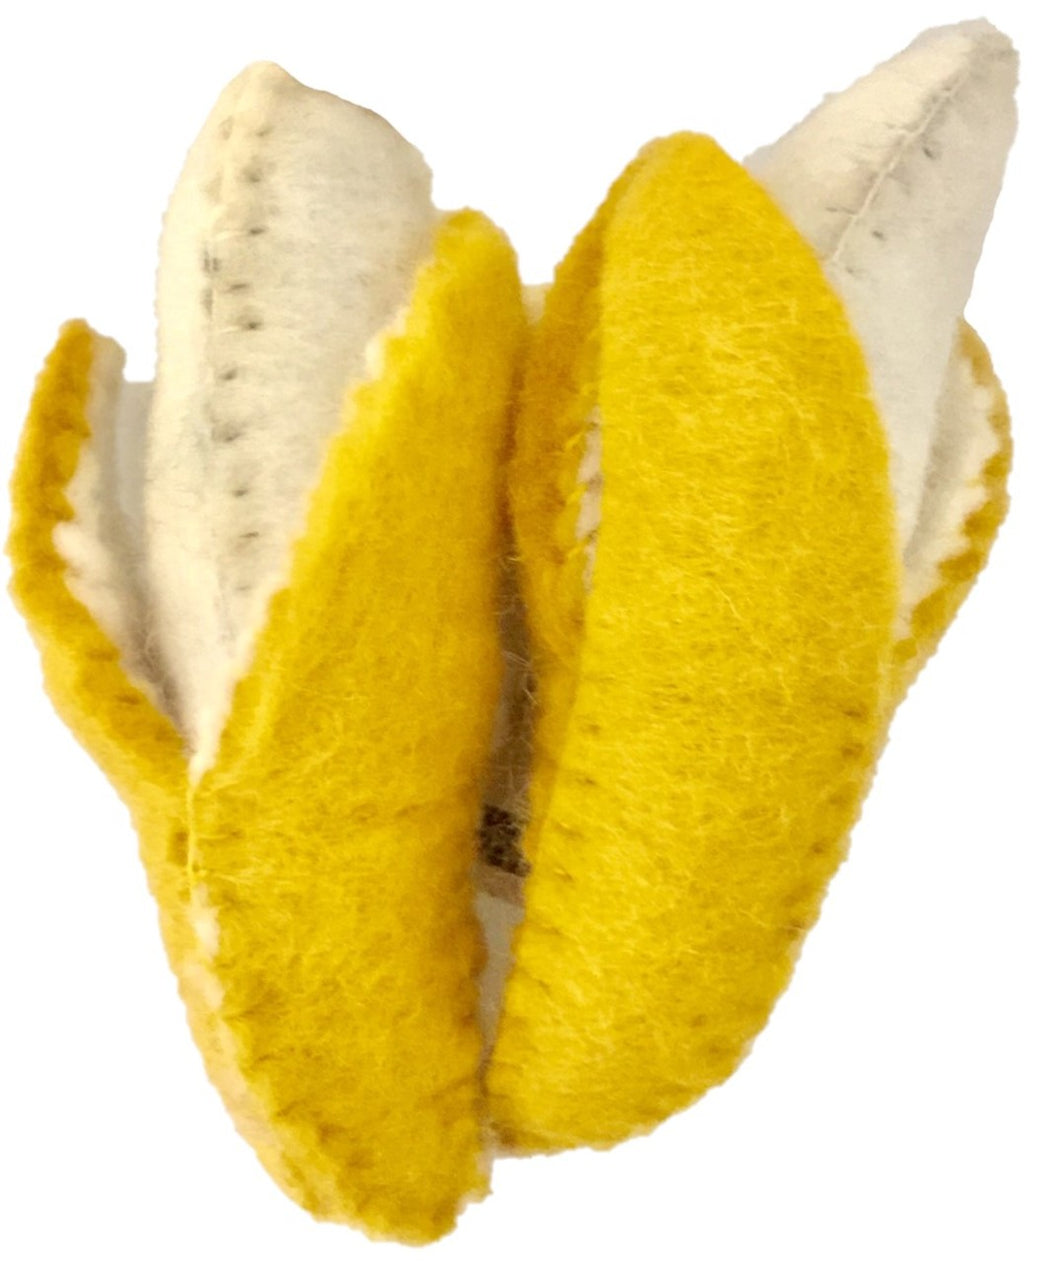 Papoose Play Food | Felt Banana